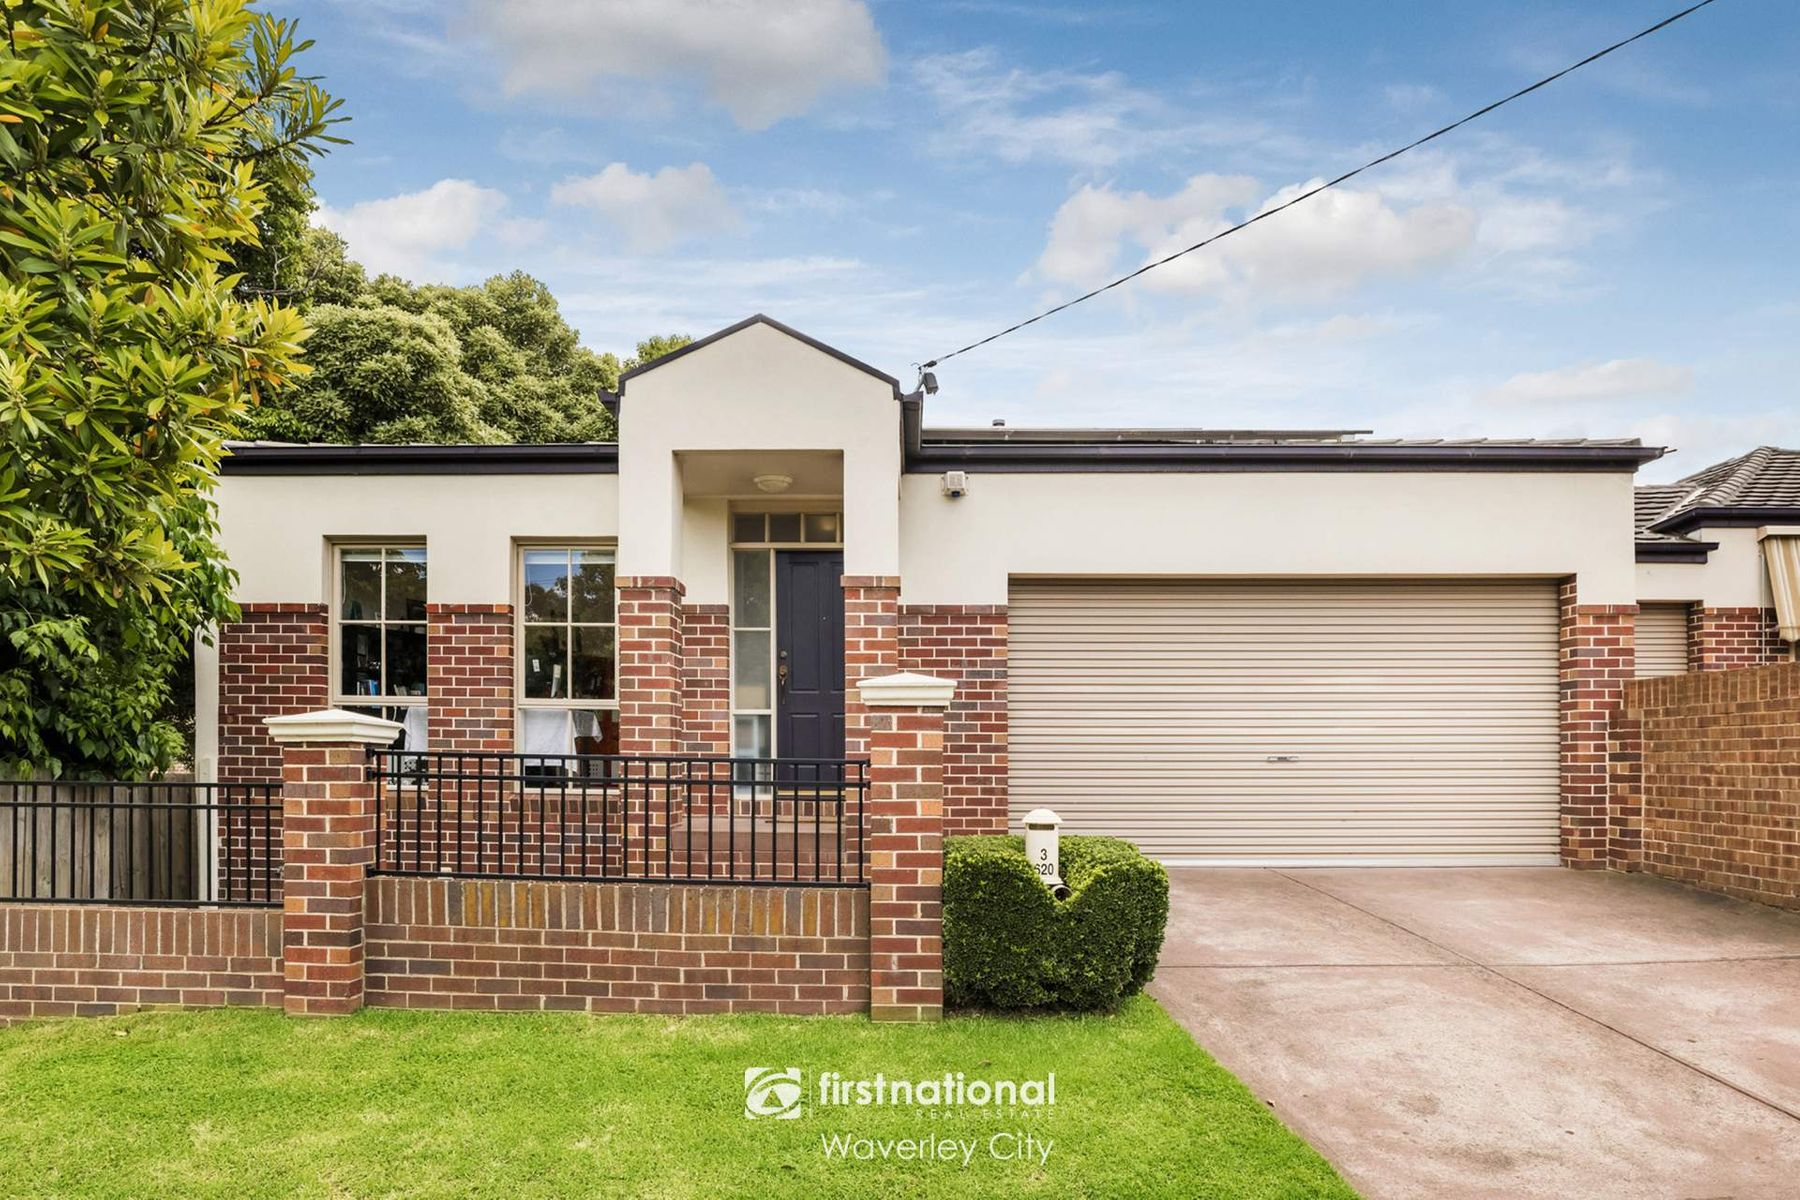 3/620 Waverley Road, Glen Waverley, VIC 3150